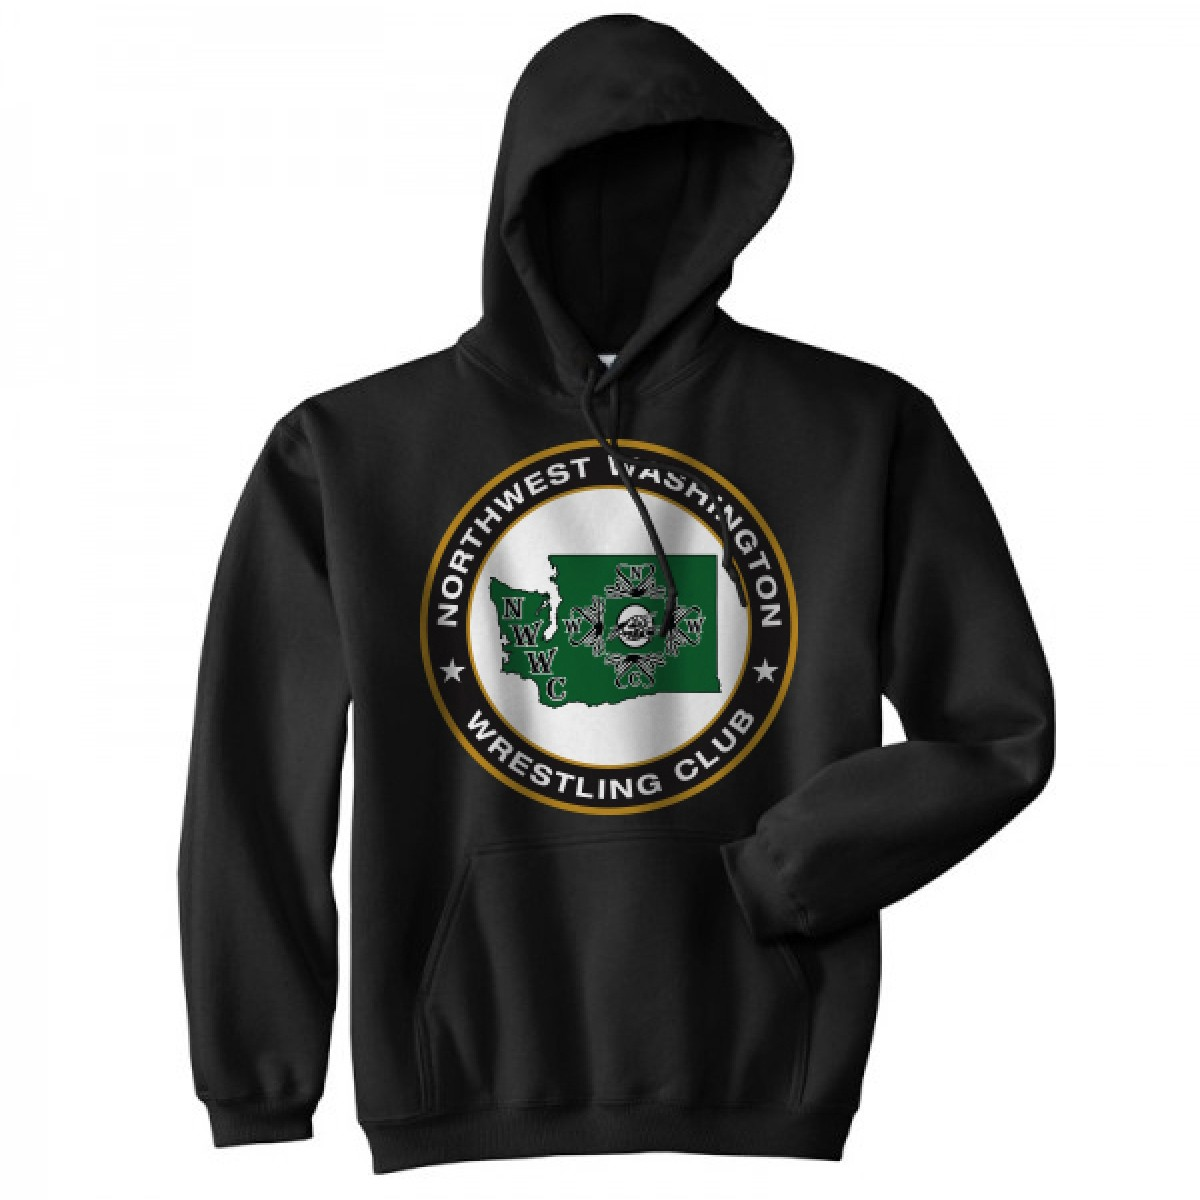 NWWC Black Hoodie With Green Logo-Black-XL